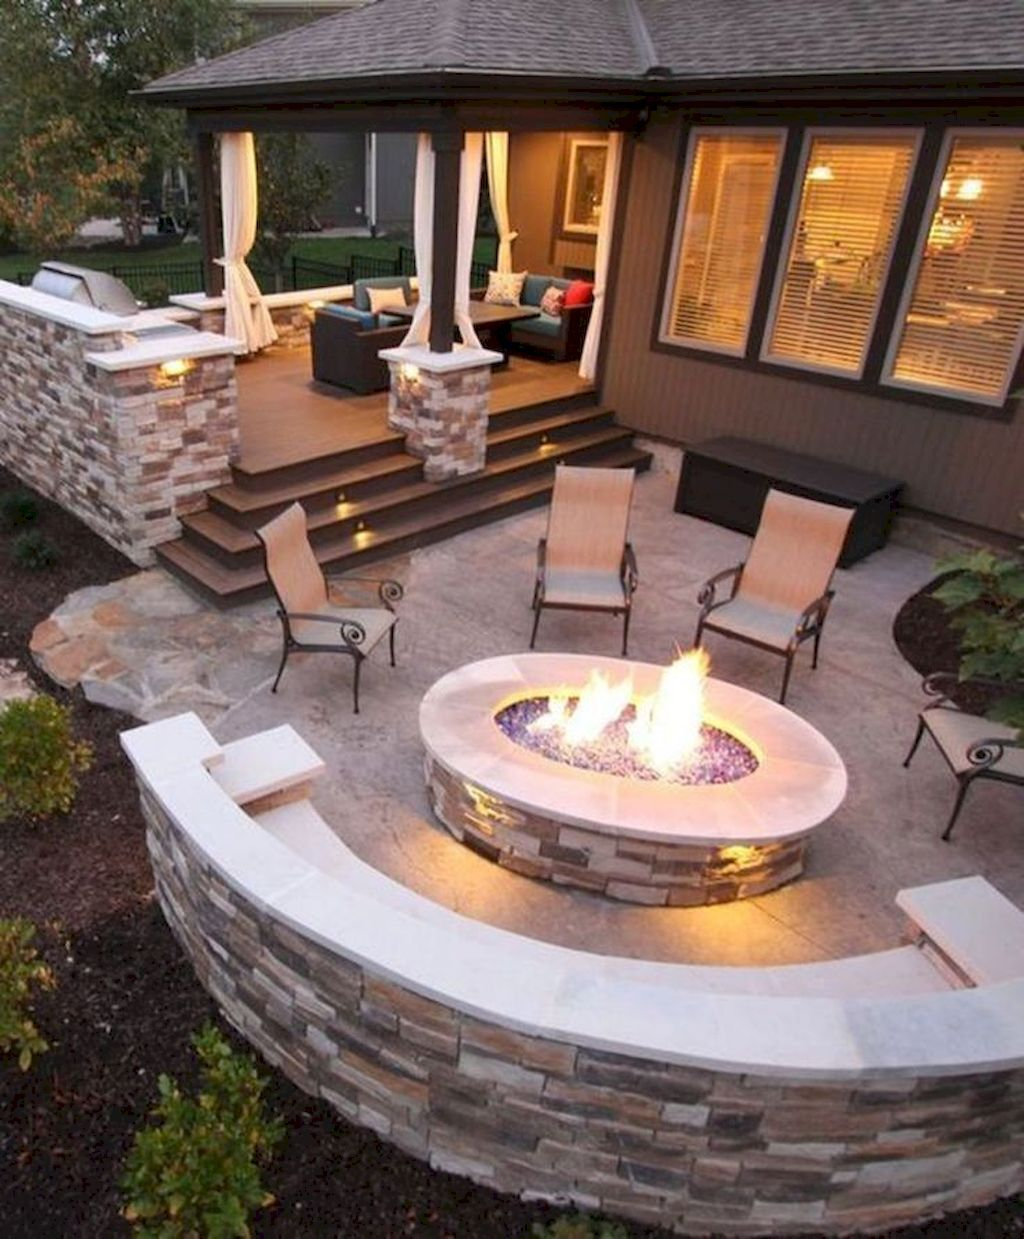 75 Relaxing Summer Backyard Patio Outdoor Seating Ideas #relaxingsummerporches